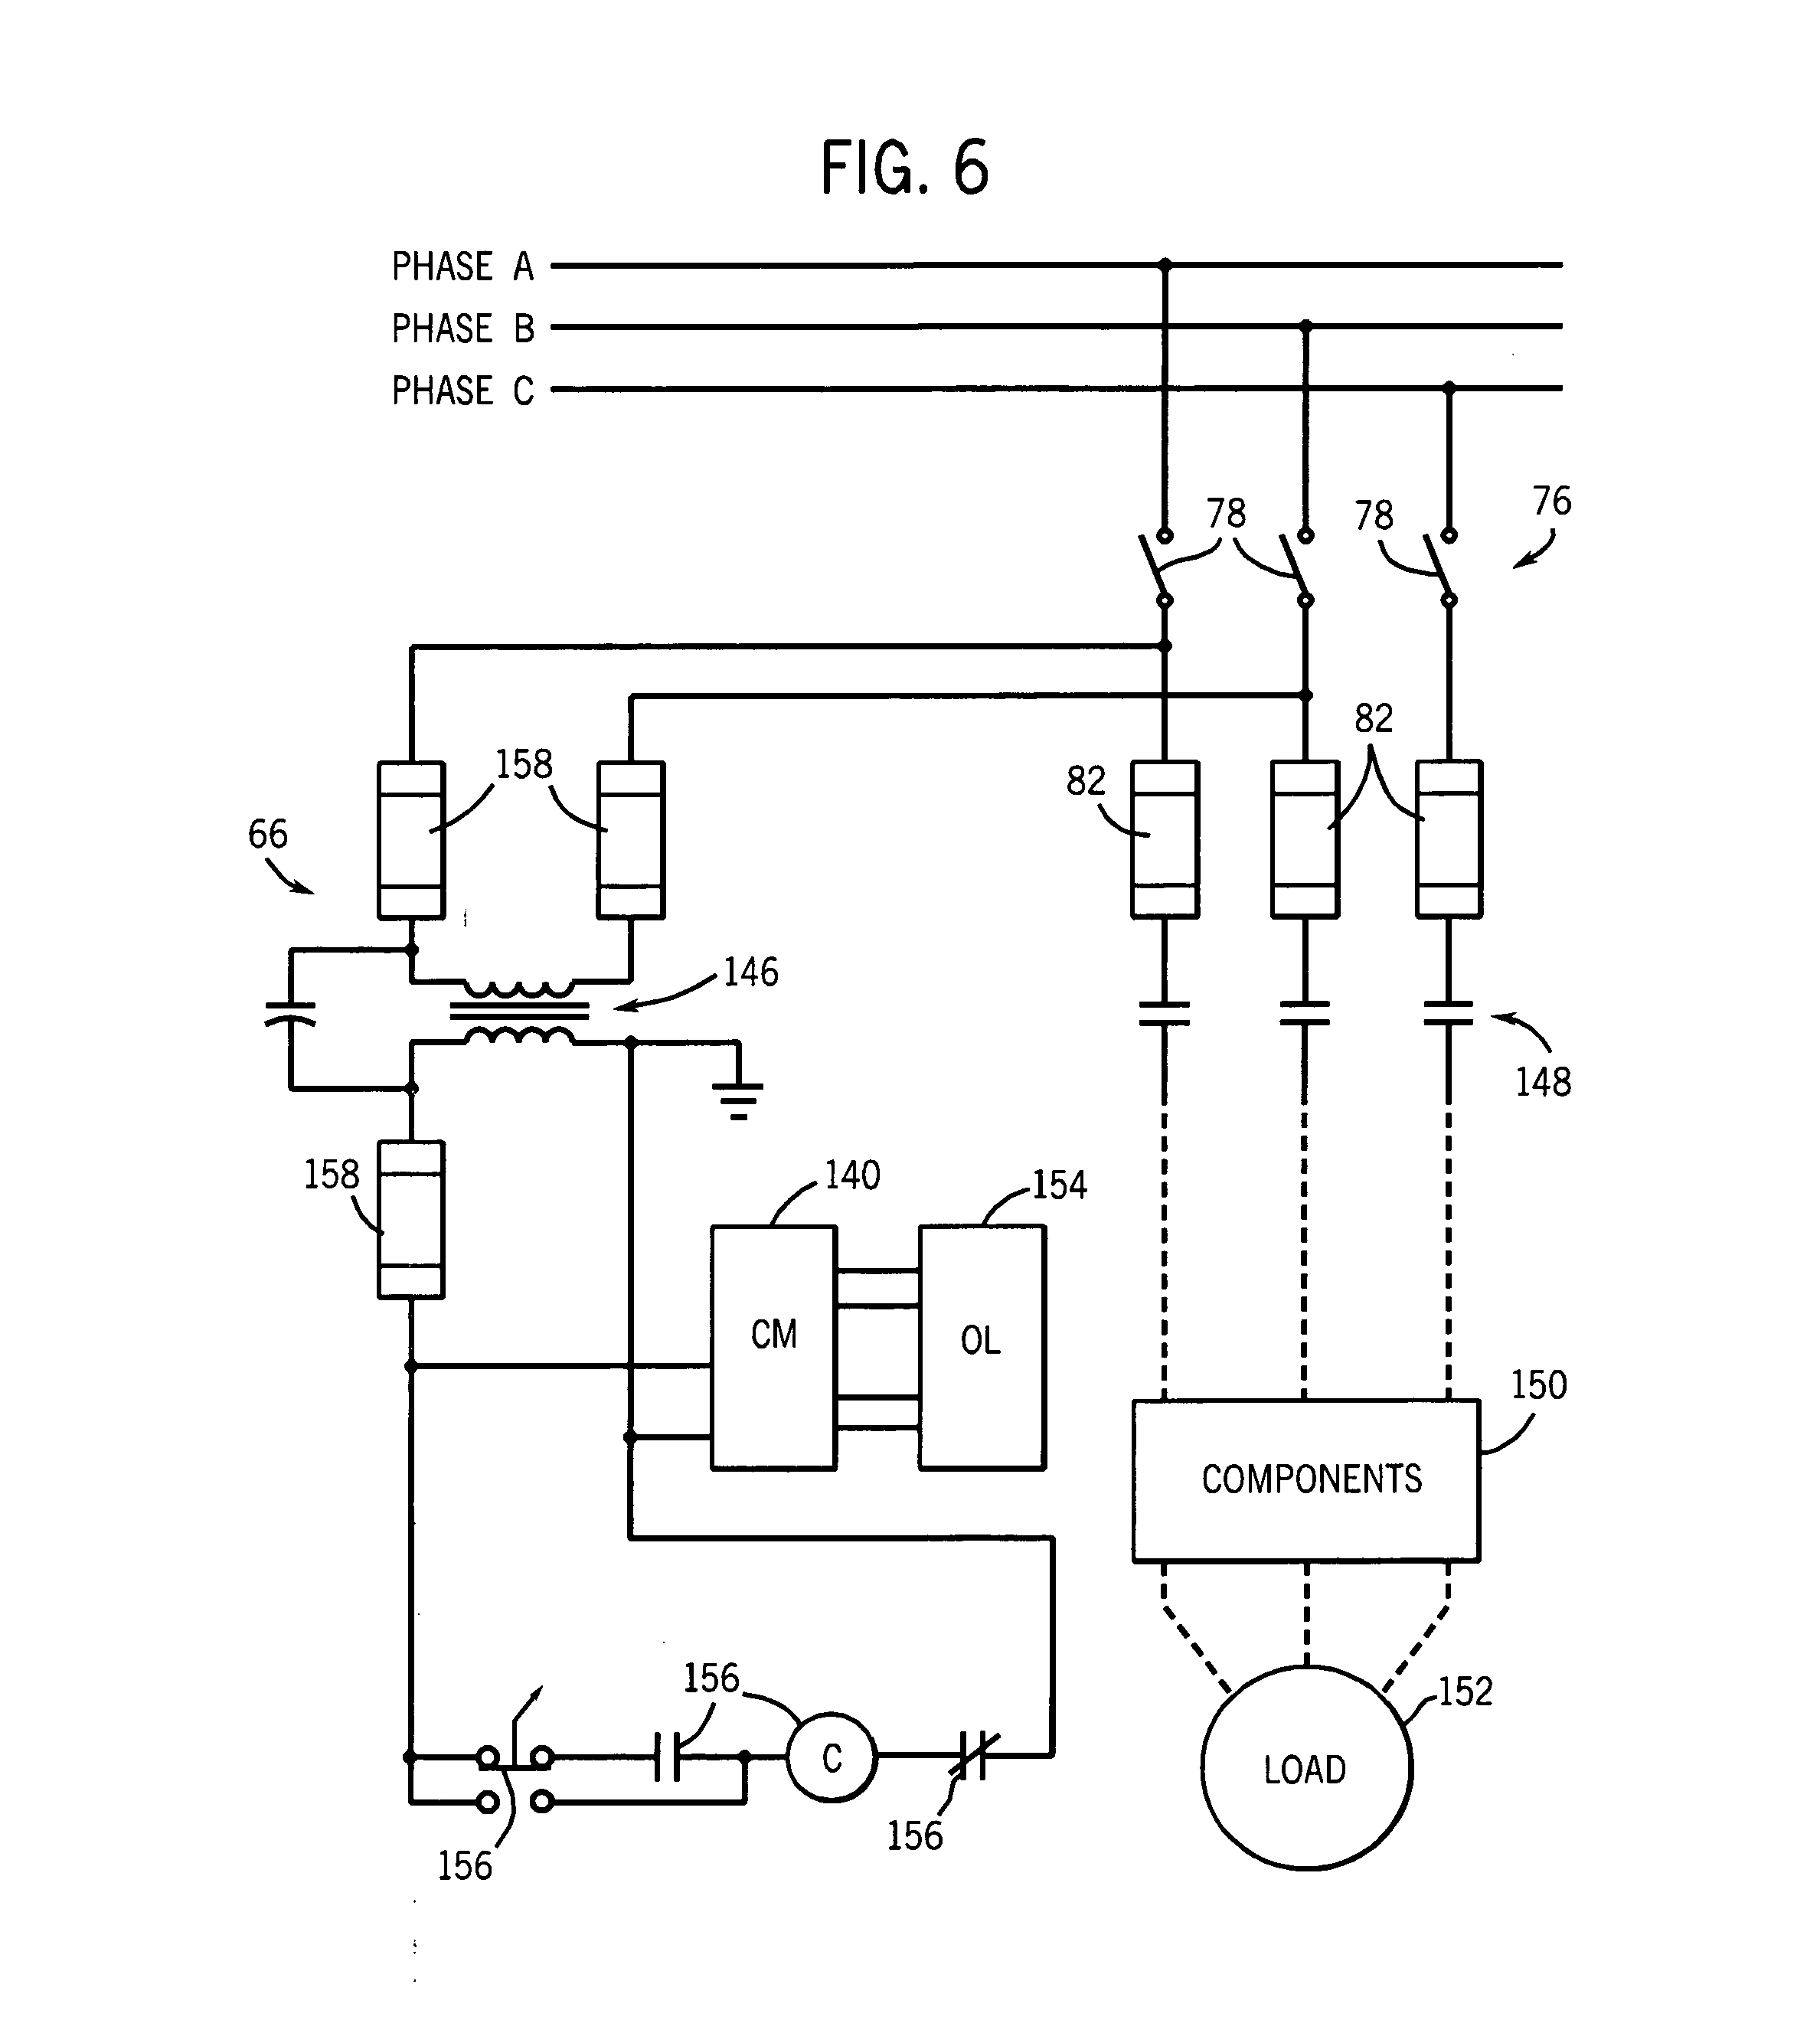 Mcc Wiring Diagram Another Blog About Cimar Guitar Copy Gibson Ge 7700 Gallery Rh Wholefoodsonabudget Com Westinghouse